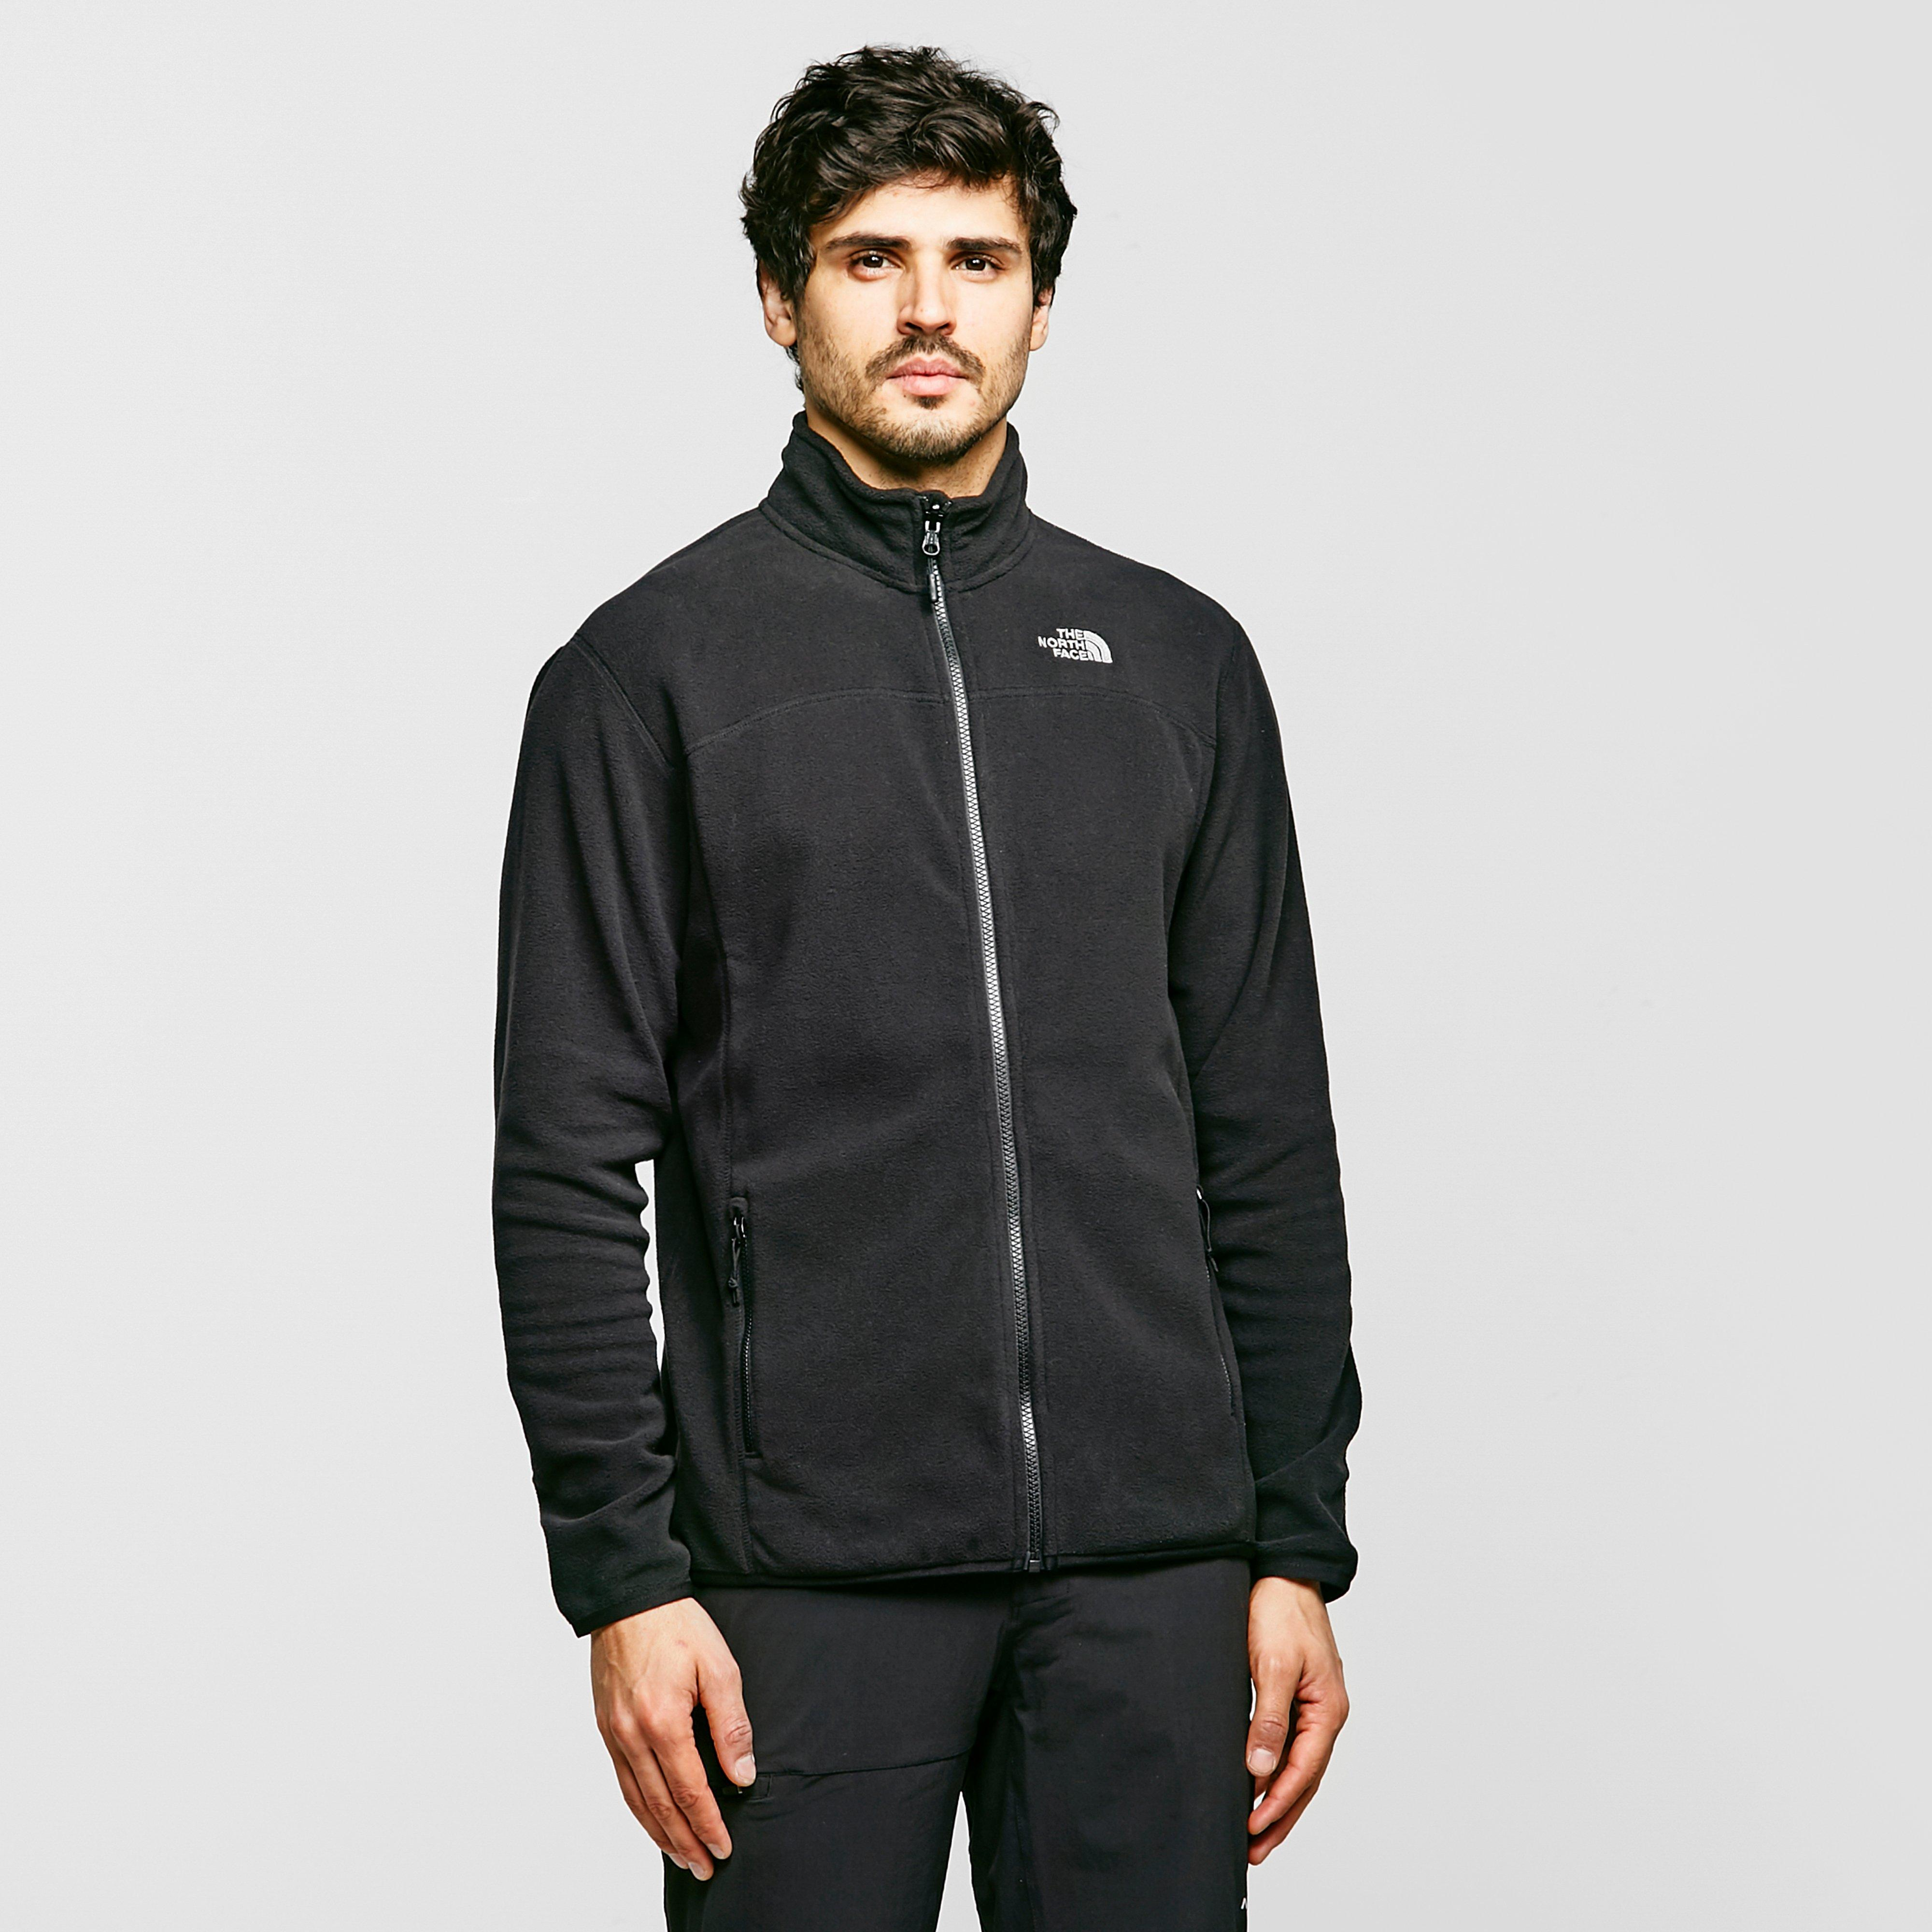 Types of men's fleece jackets Fleece is a synthetic material usually made of polyester, and there are three fleece weight classes: light, mid, and heavy. Lighter choices provide optimal breathability for intense activities, while mid weight and heavier fleece jackets are ideal for general use.